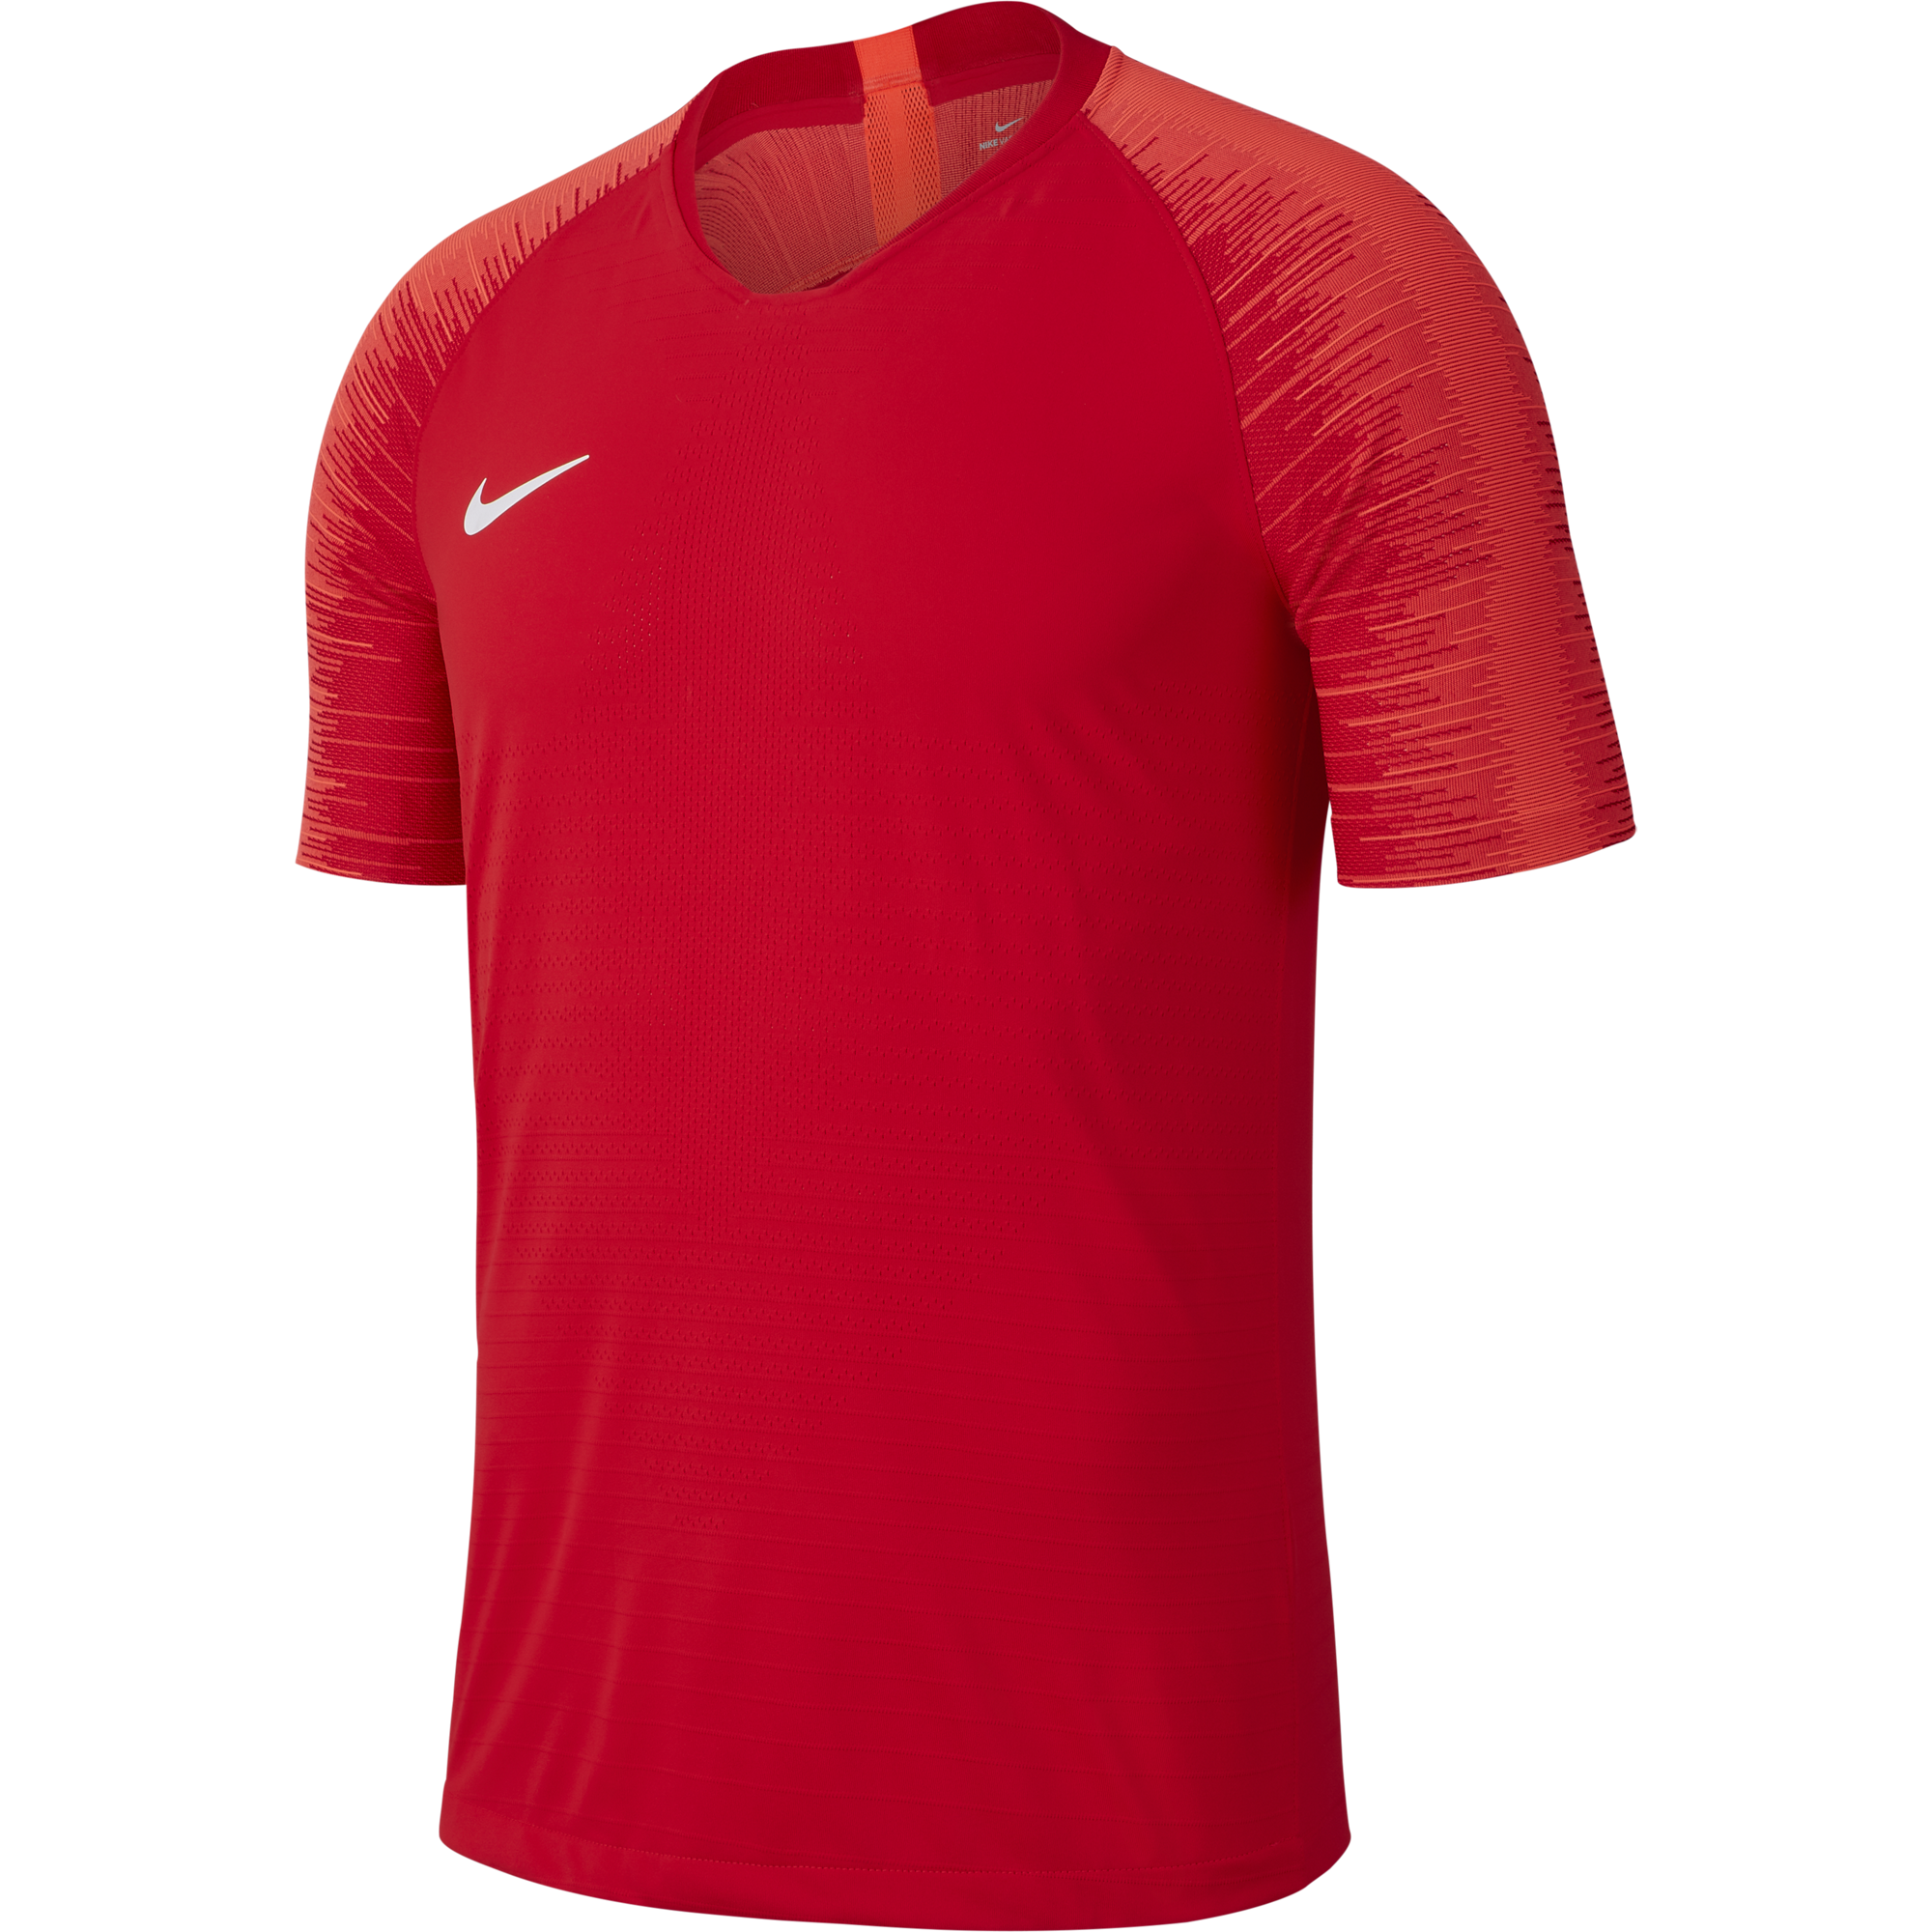 Nike Vapor knit jersey Uni/red/Bright crimson